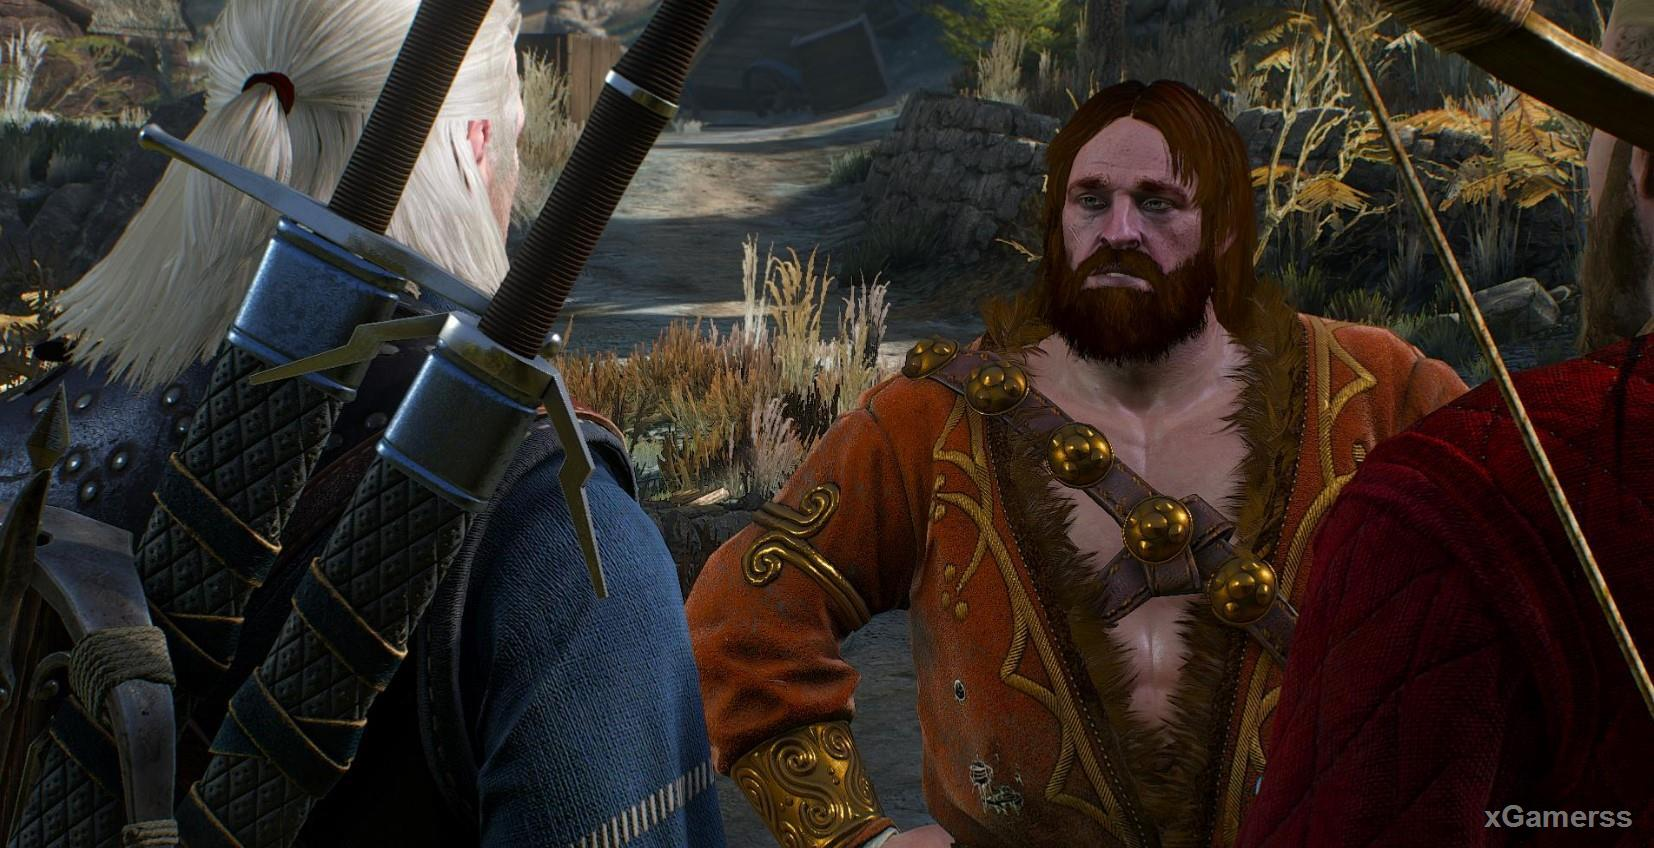 Mousesack is an old friend of Geralt, for whom Ciri is also important